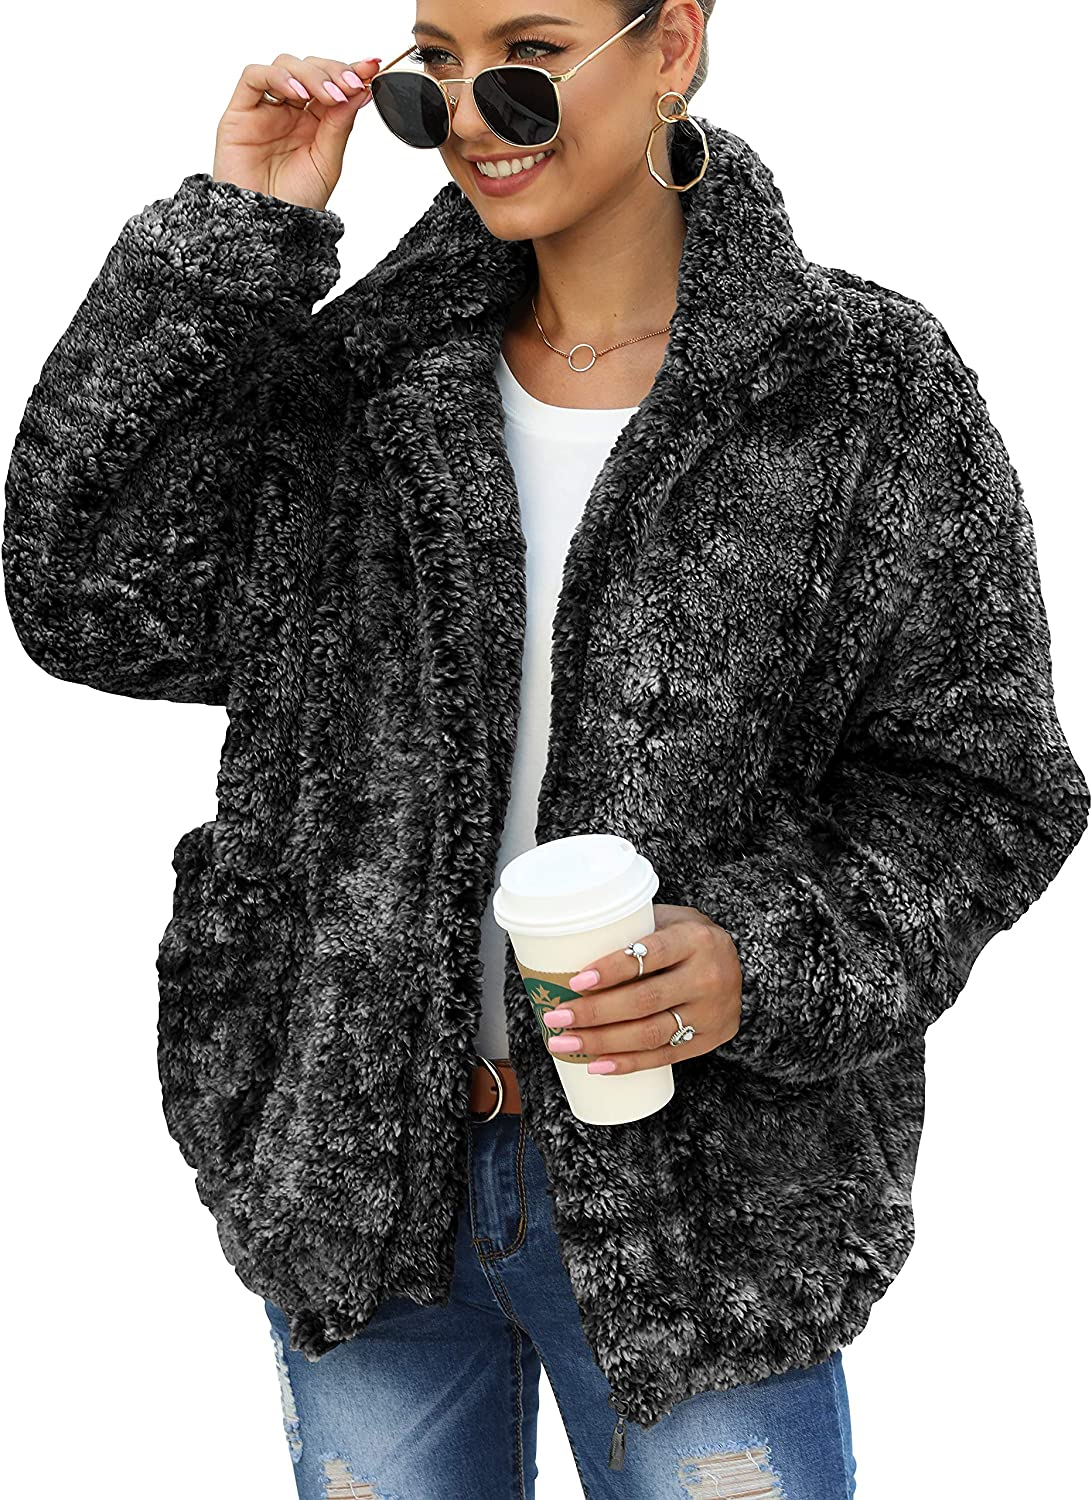 ANRABESS Womens Fashion Long Sleeves Hooded Zip Up Faux Shearling Shaggy Oversized Coat Jacket with Pockets Warm Winter